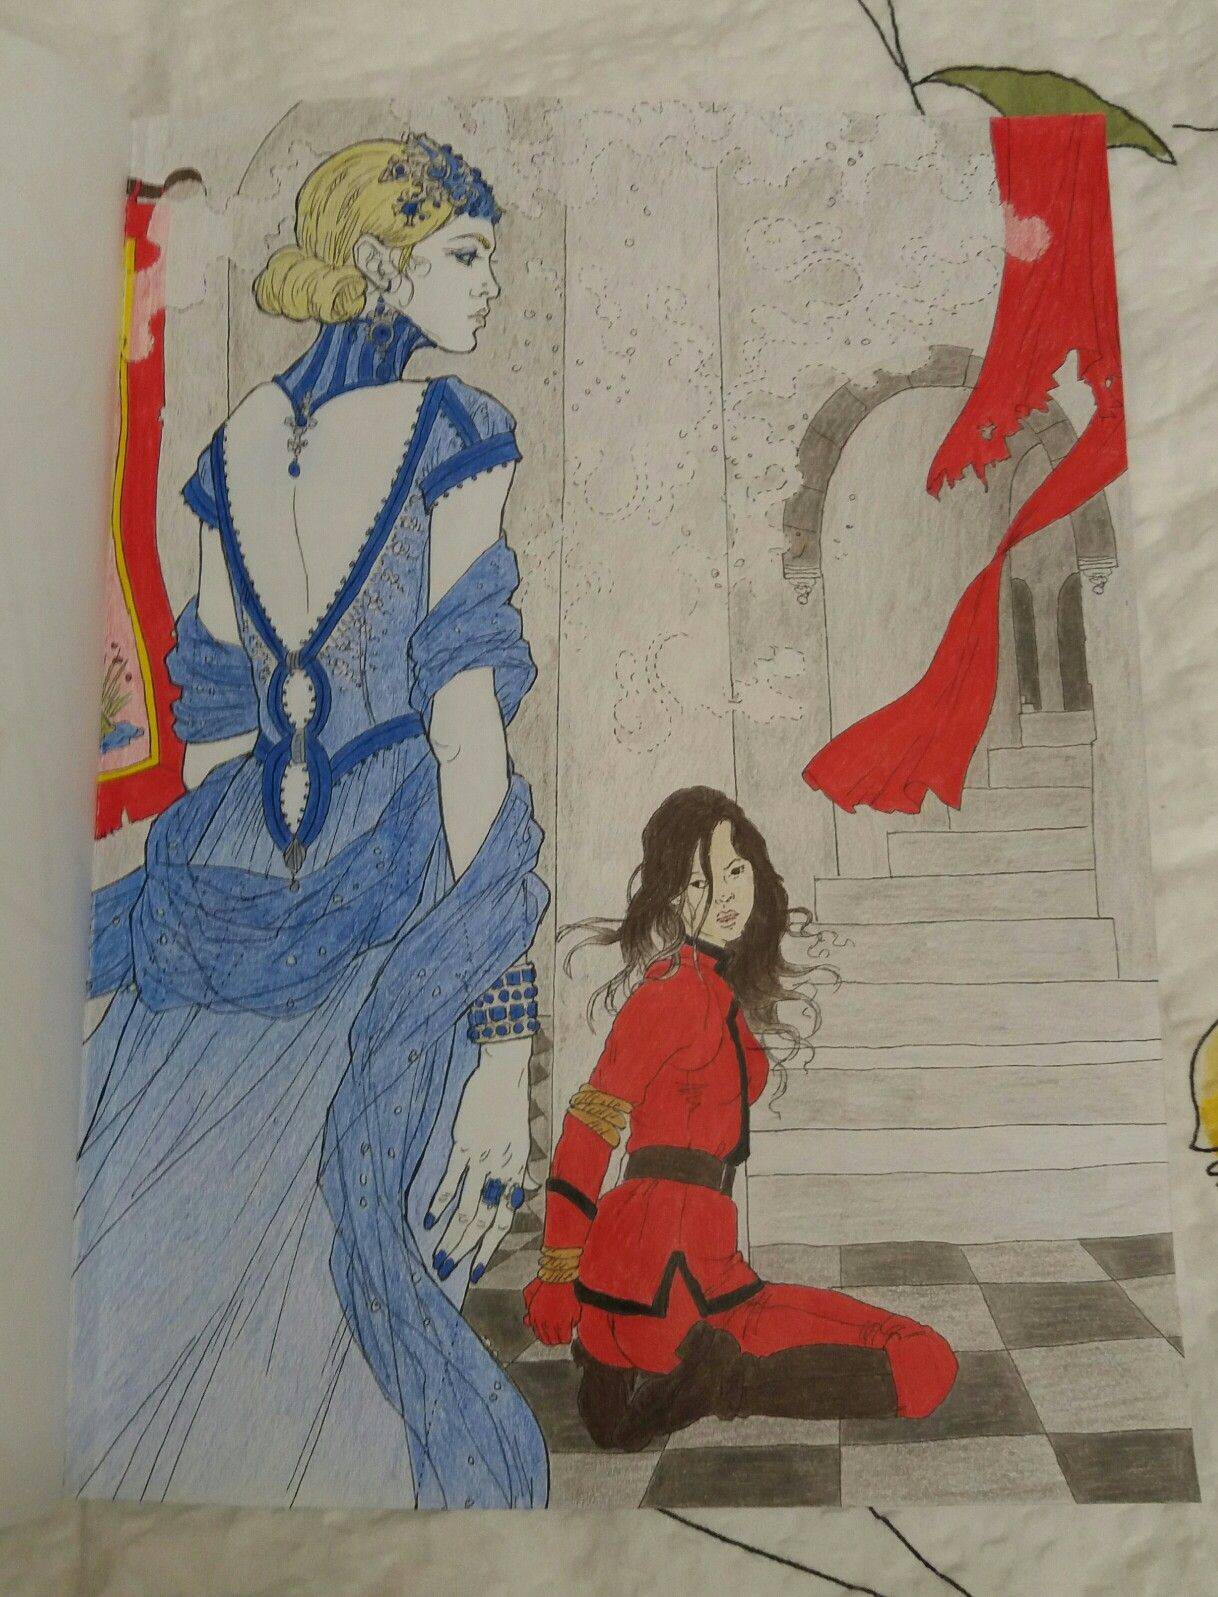 Pin By Leah Lutheran On Red Queen Coloring Book Coloring Books Disney Coloring Pages Summer Coloring Pages